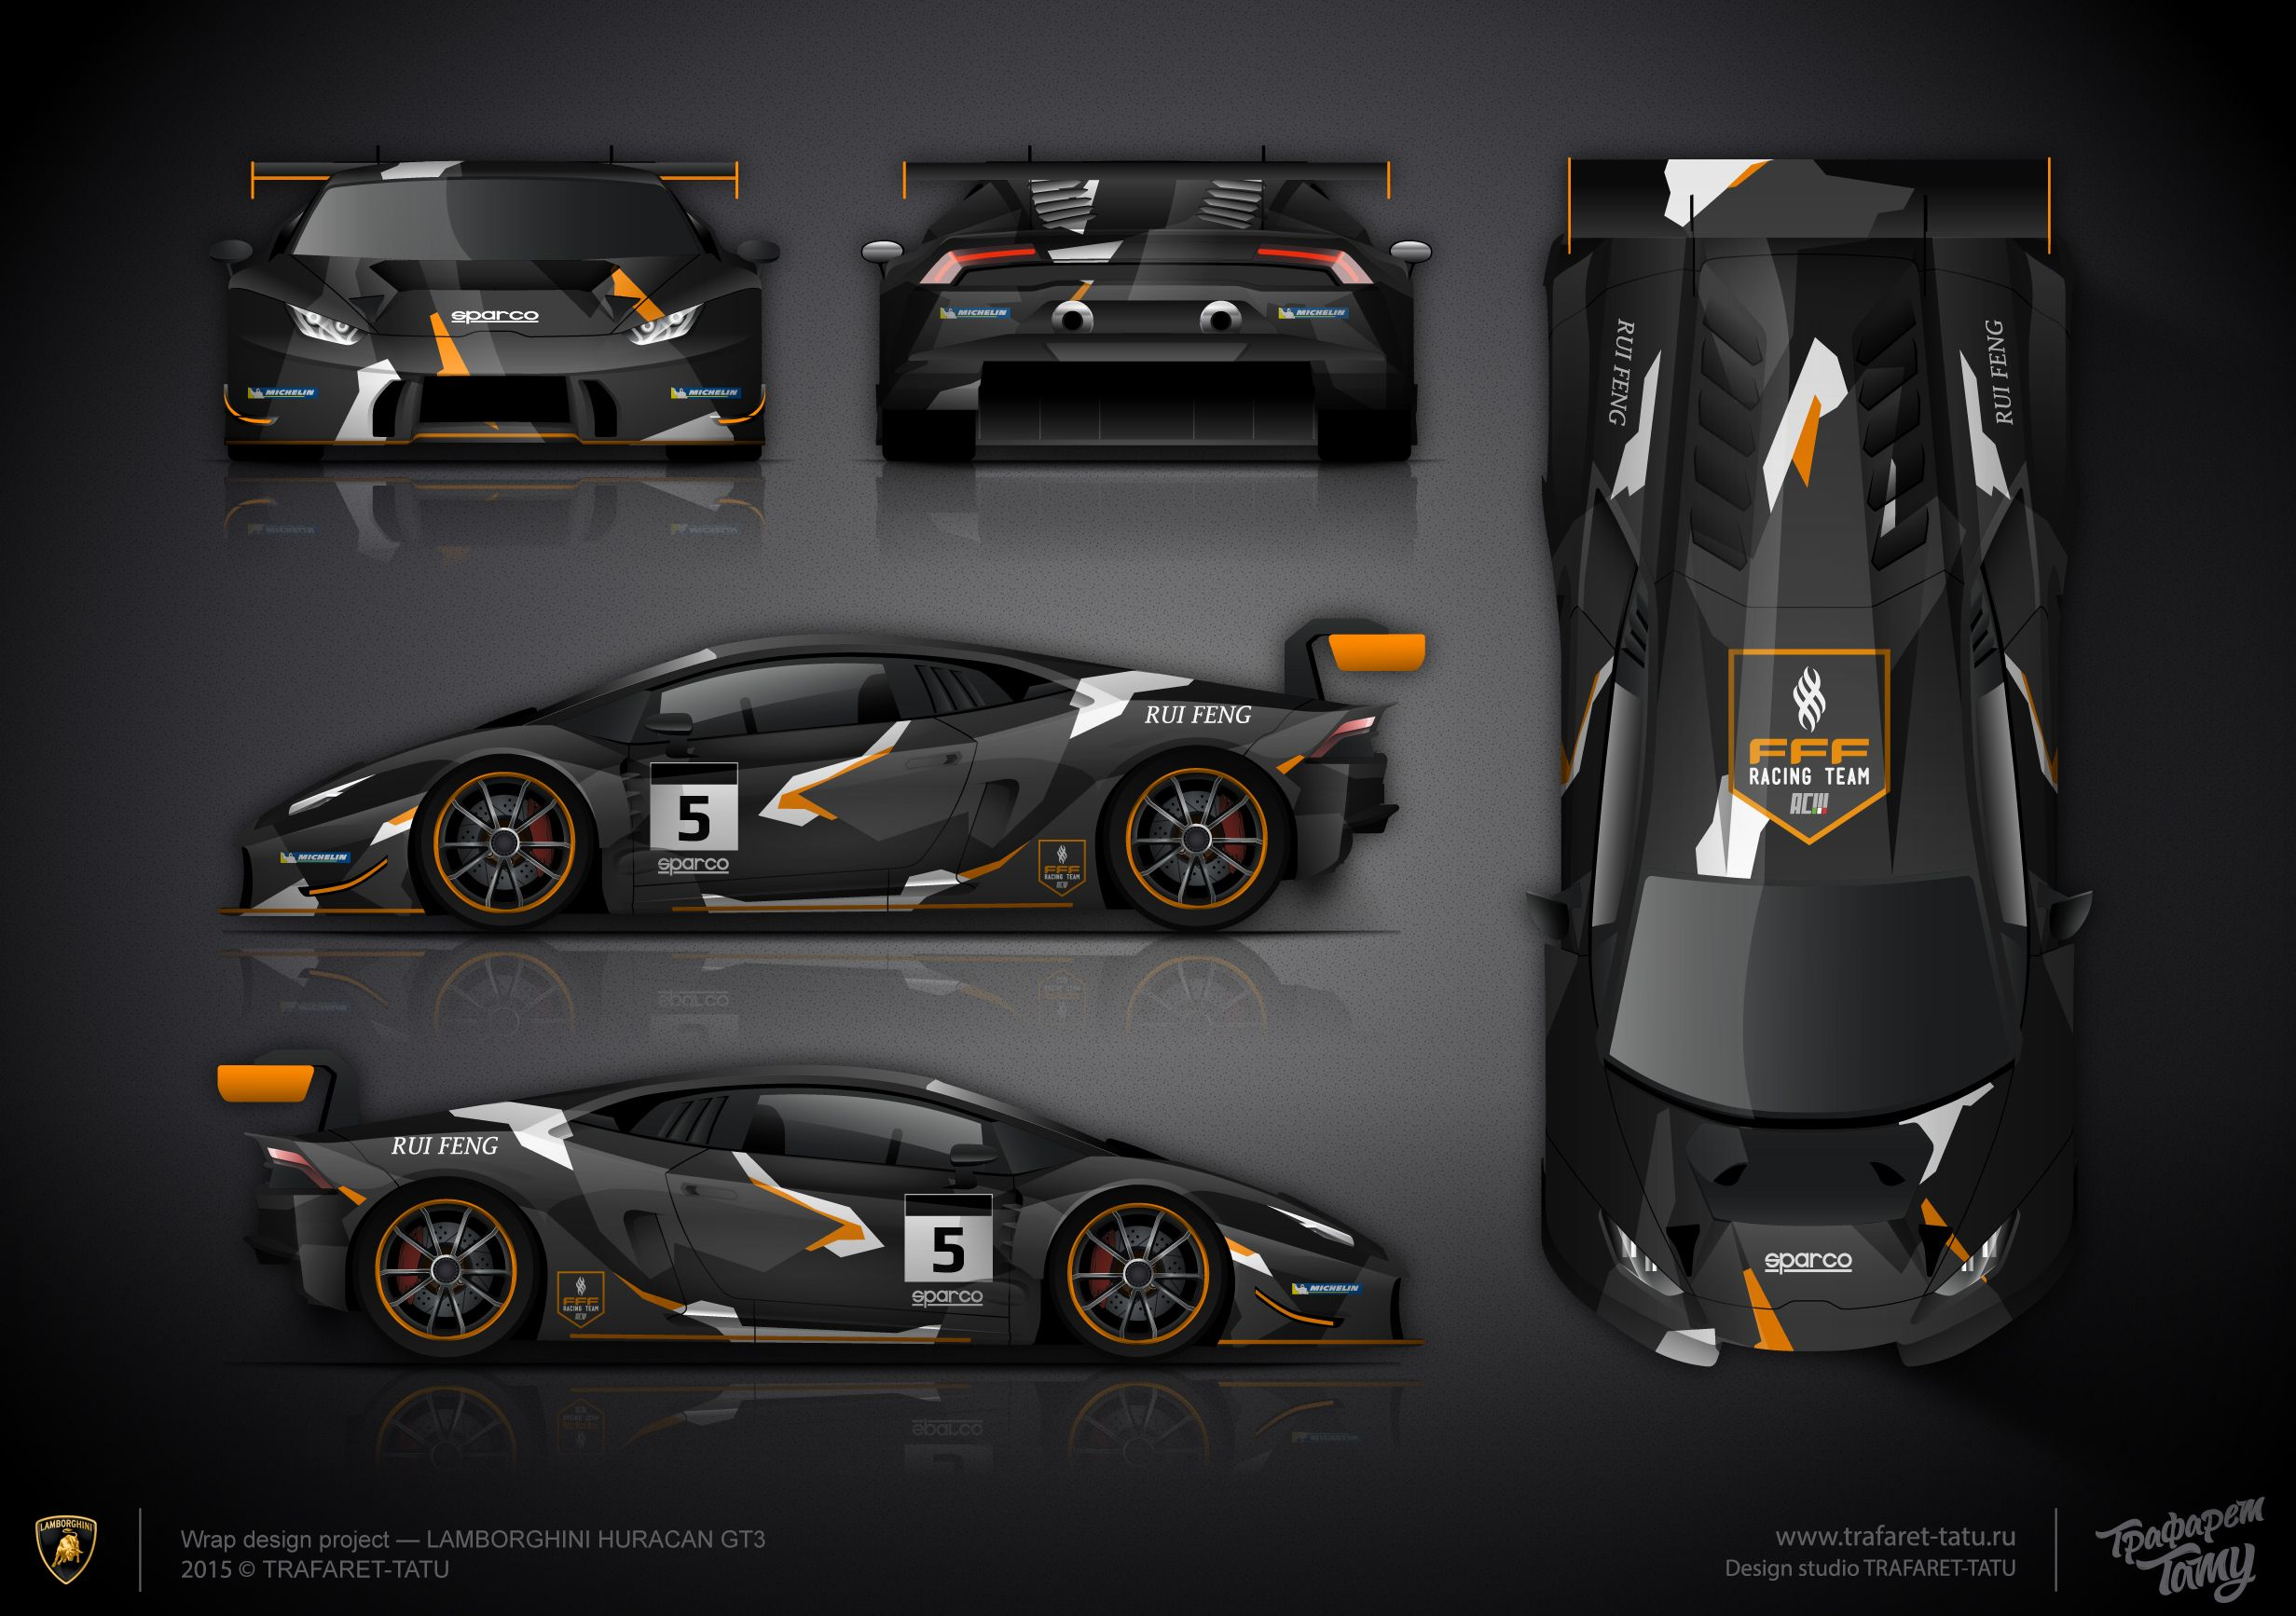 The Approved Livery Design For LAMBORGHINI HURACAN GT3 For The FFF Racing  Team